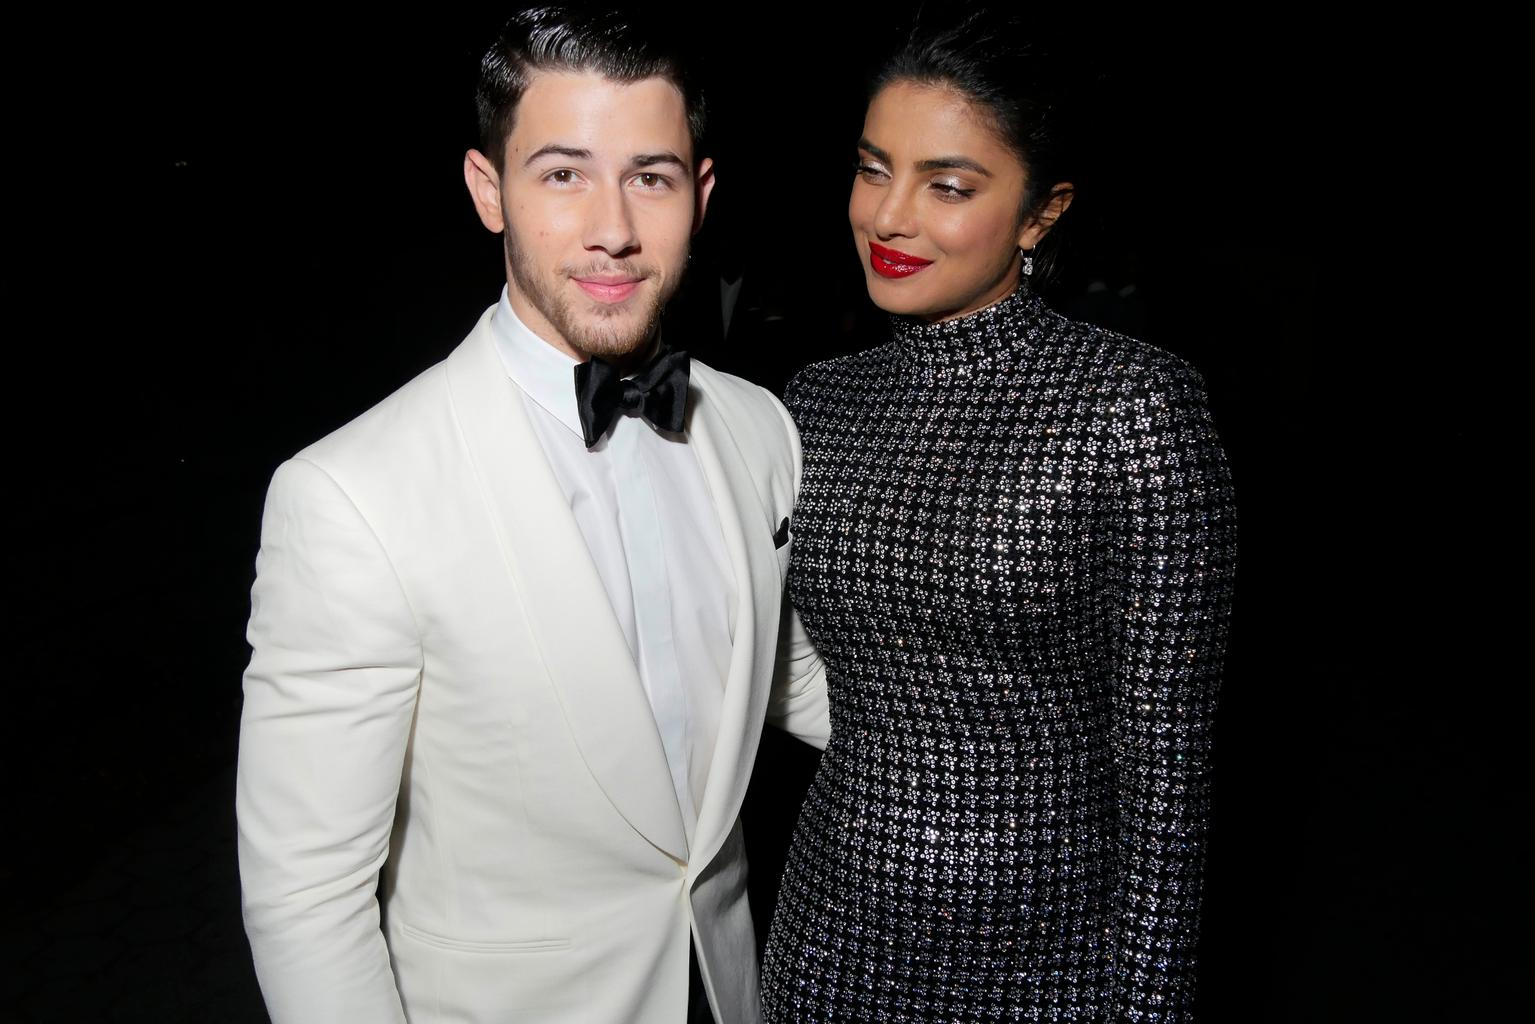 Priyanka Chopra - Nick Jonas's big fat Thanksgiving ahead of big fat wedding